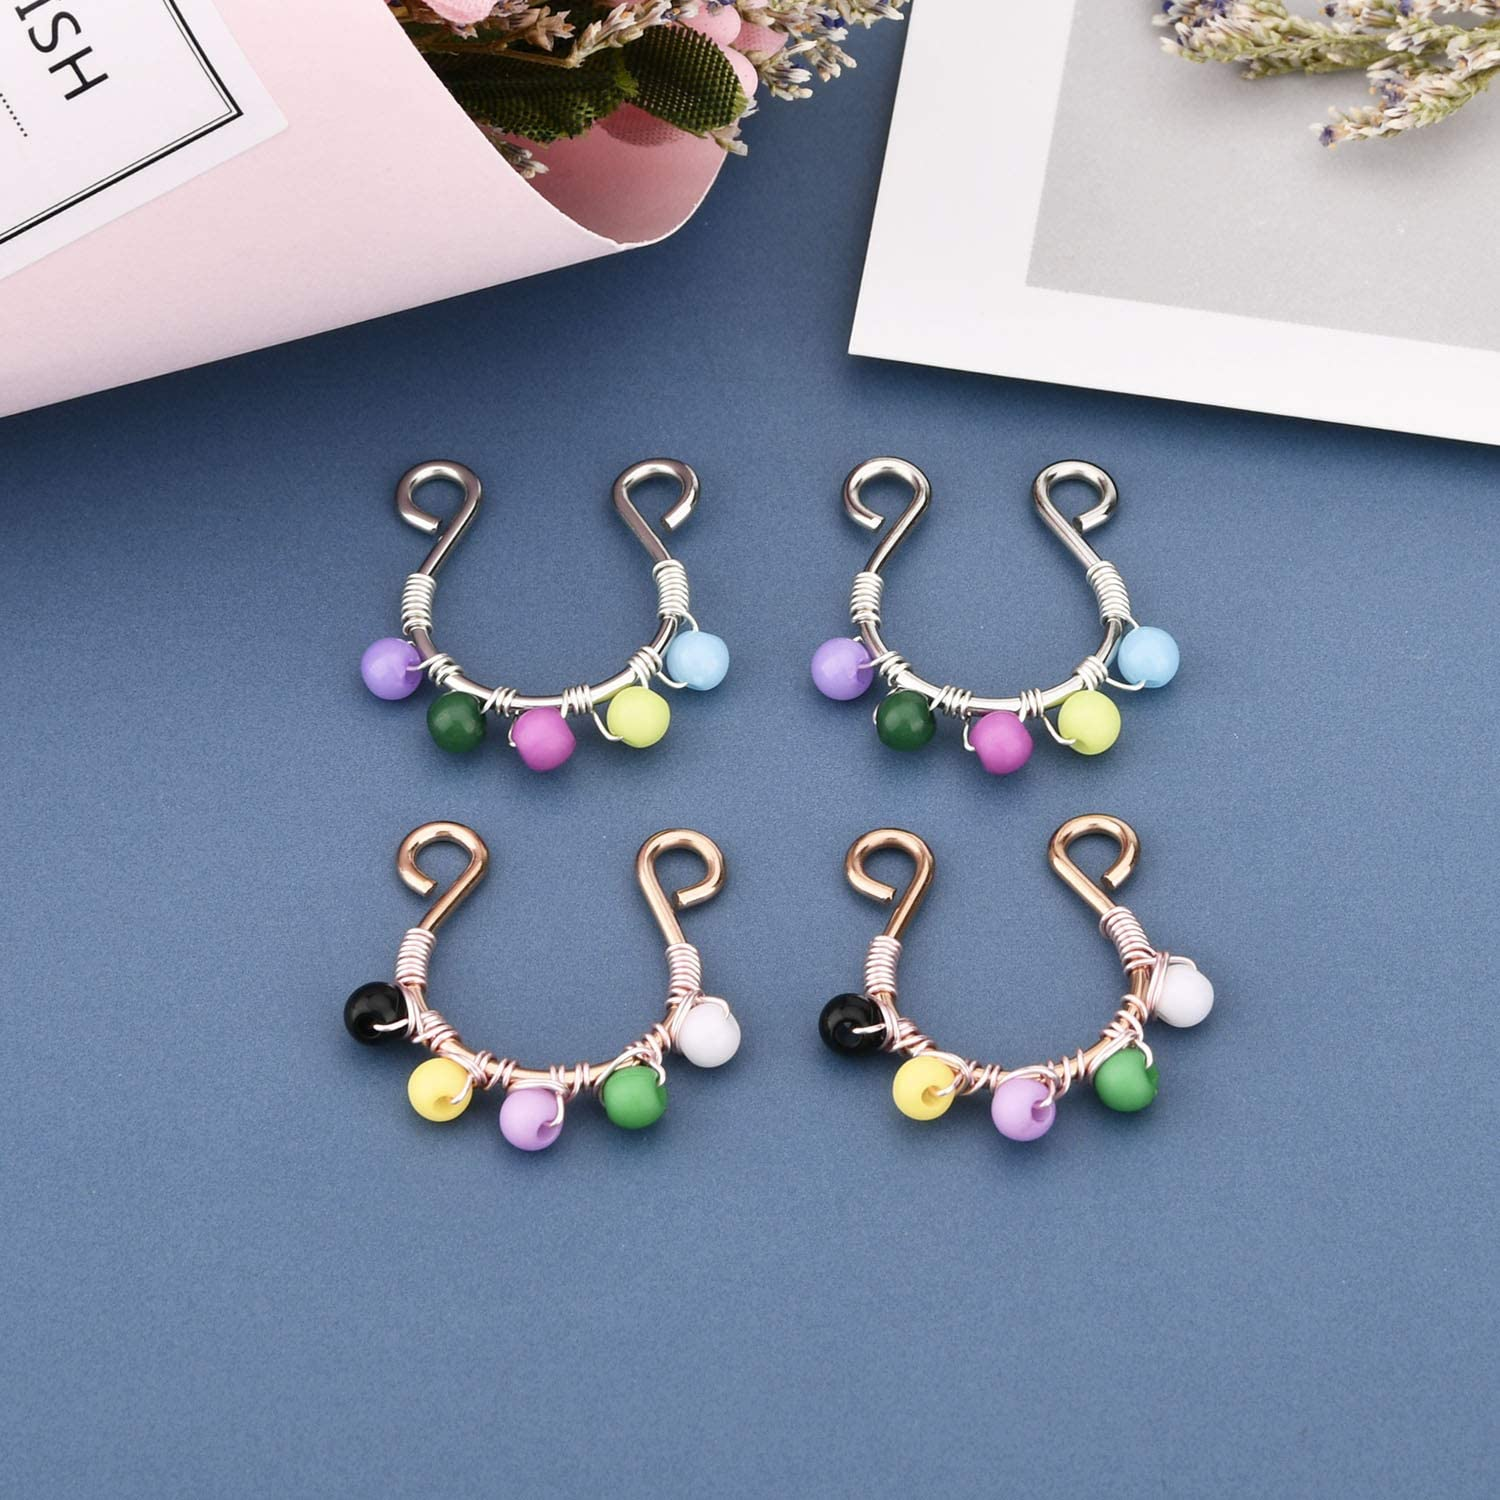 FECTAS Fake Nipplerings Non-Pierced Piercings Clip On Nipple Rings Stainless Steel Faux Nipple Jewelry for Women